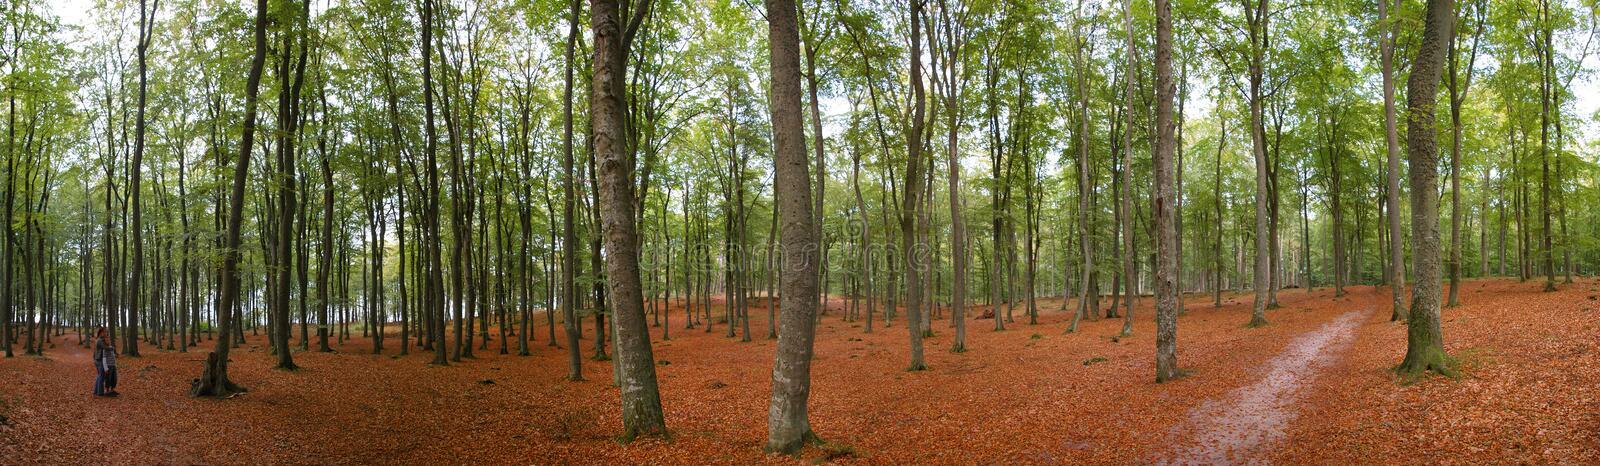 Panoramic autumn forest. Panoramic view of forest in autumn scene royalty free stock photos